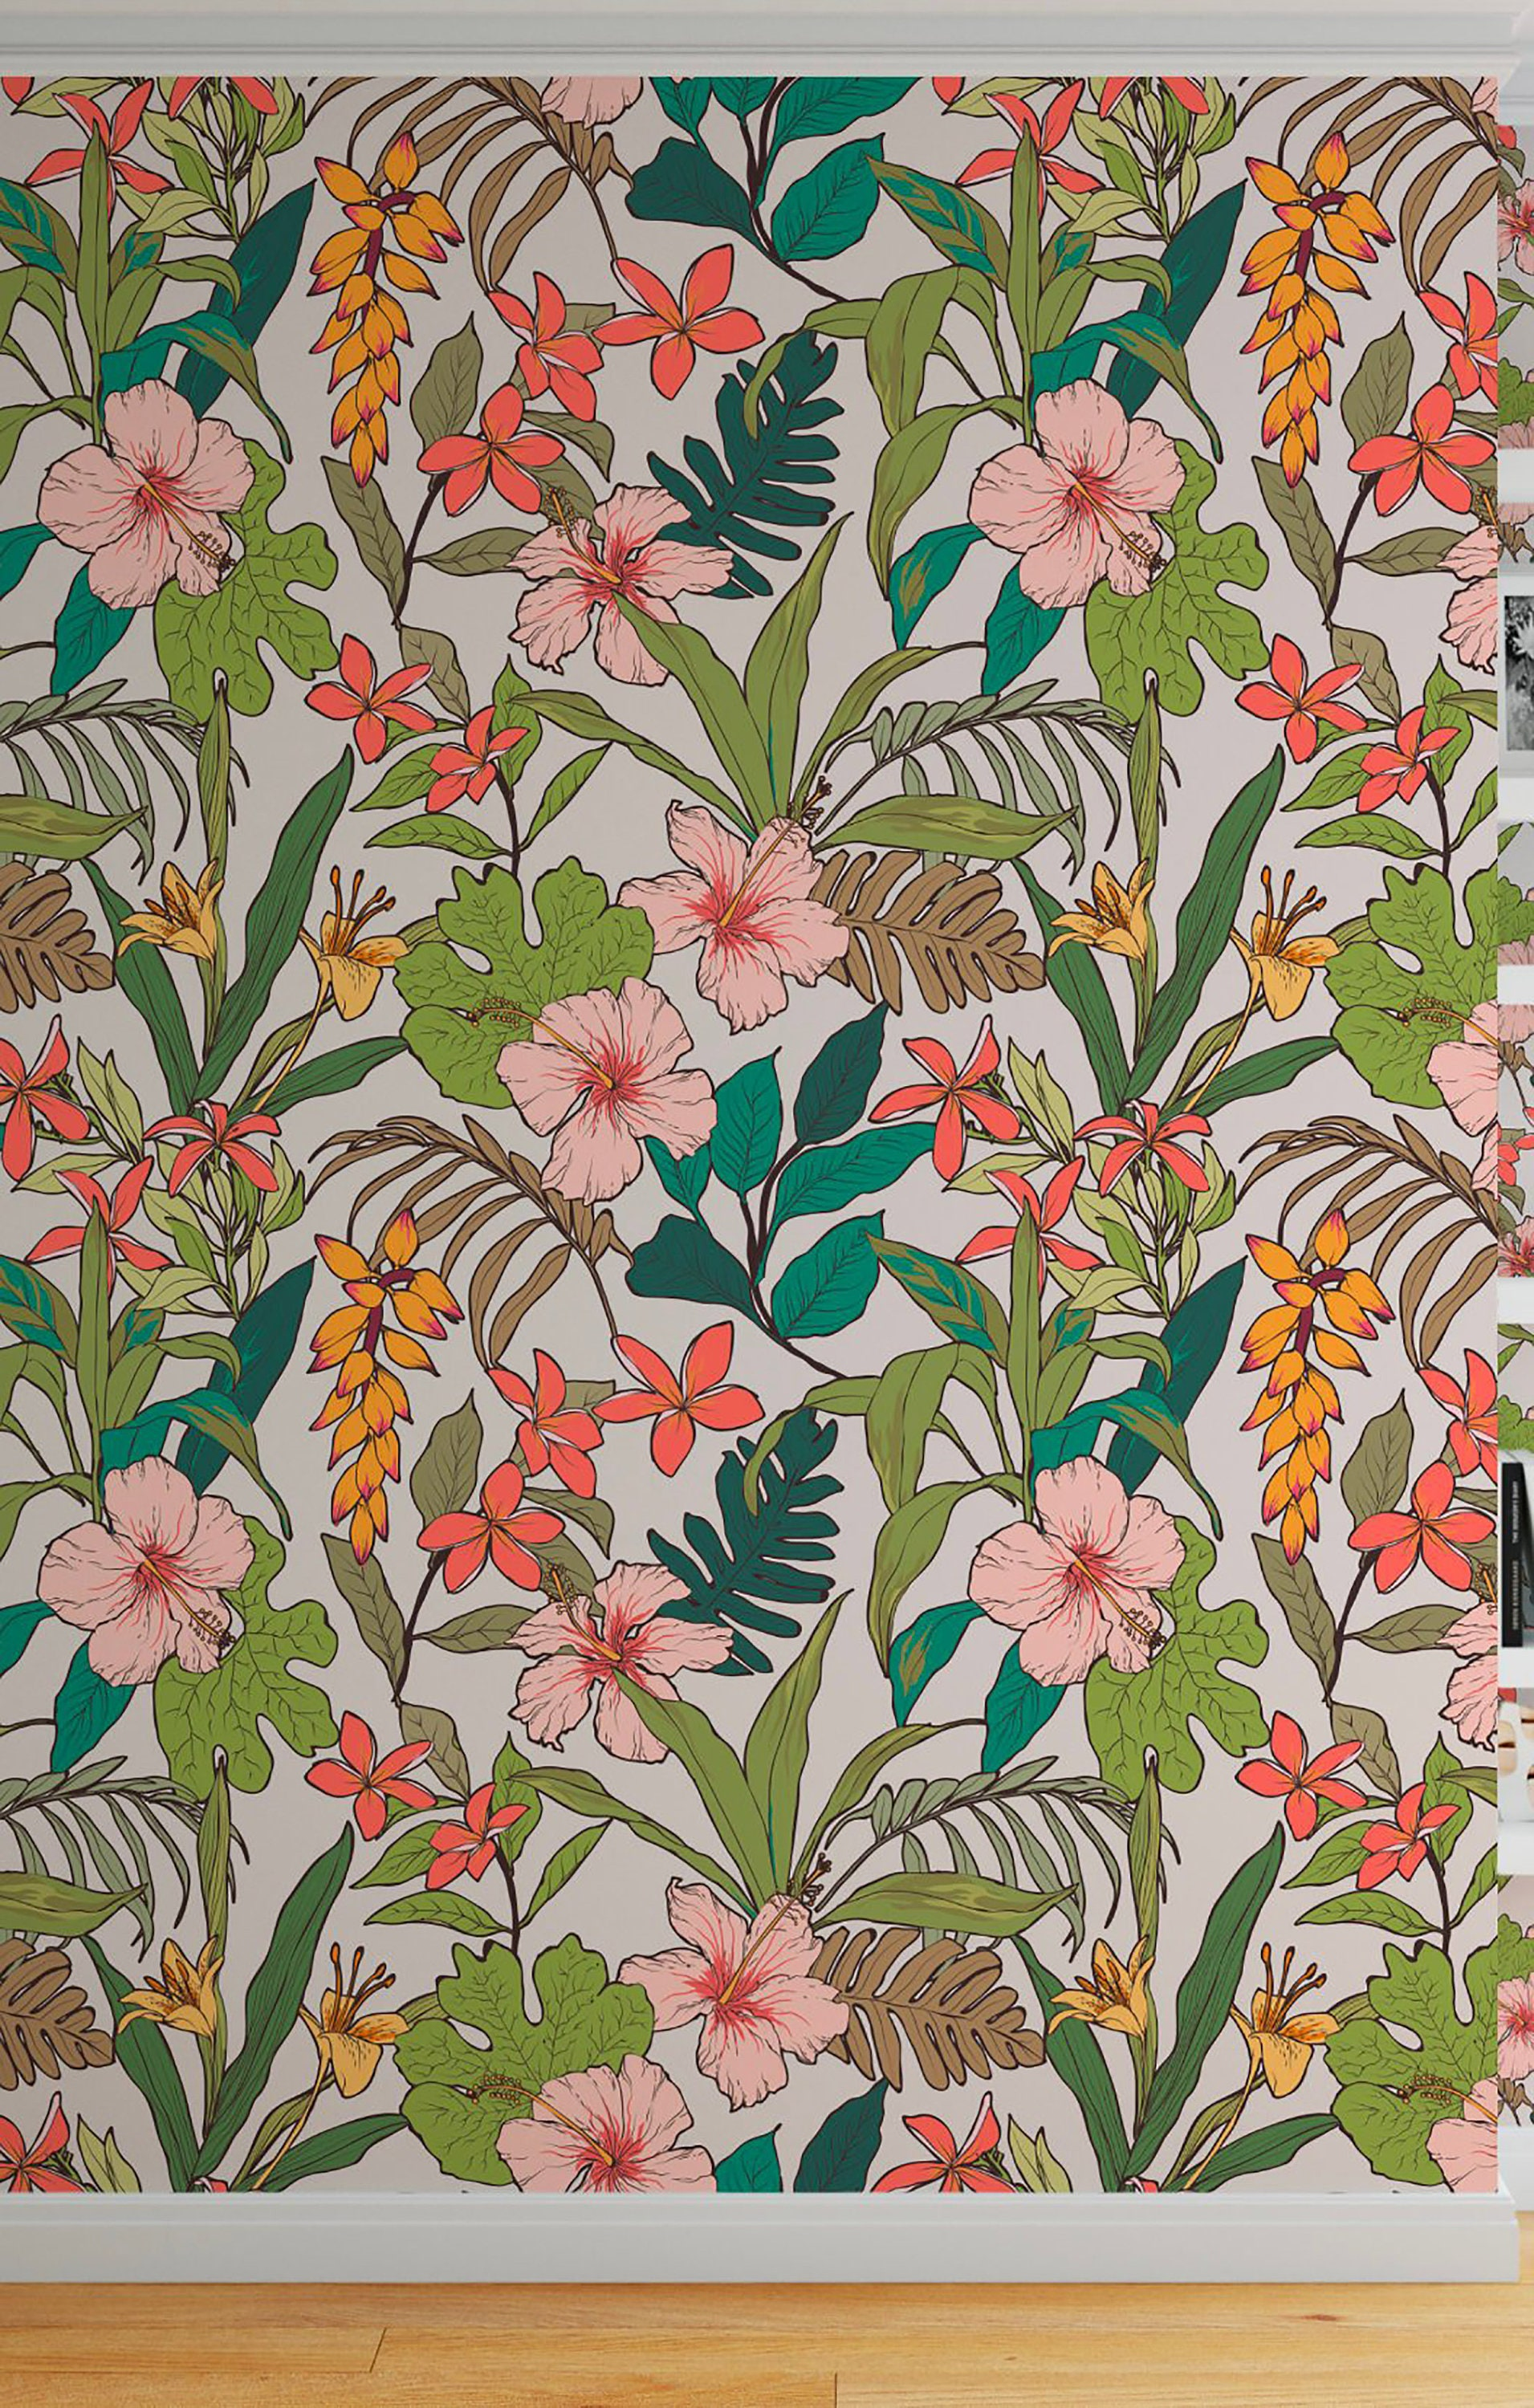 Floral Tropical Wallpaper Peel And Stick Wallpaper Banana Etsy